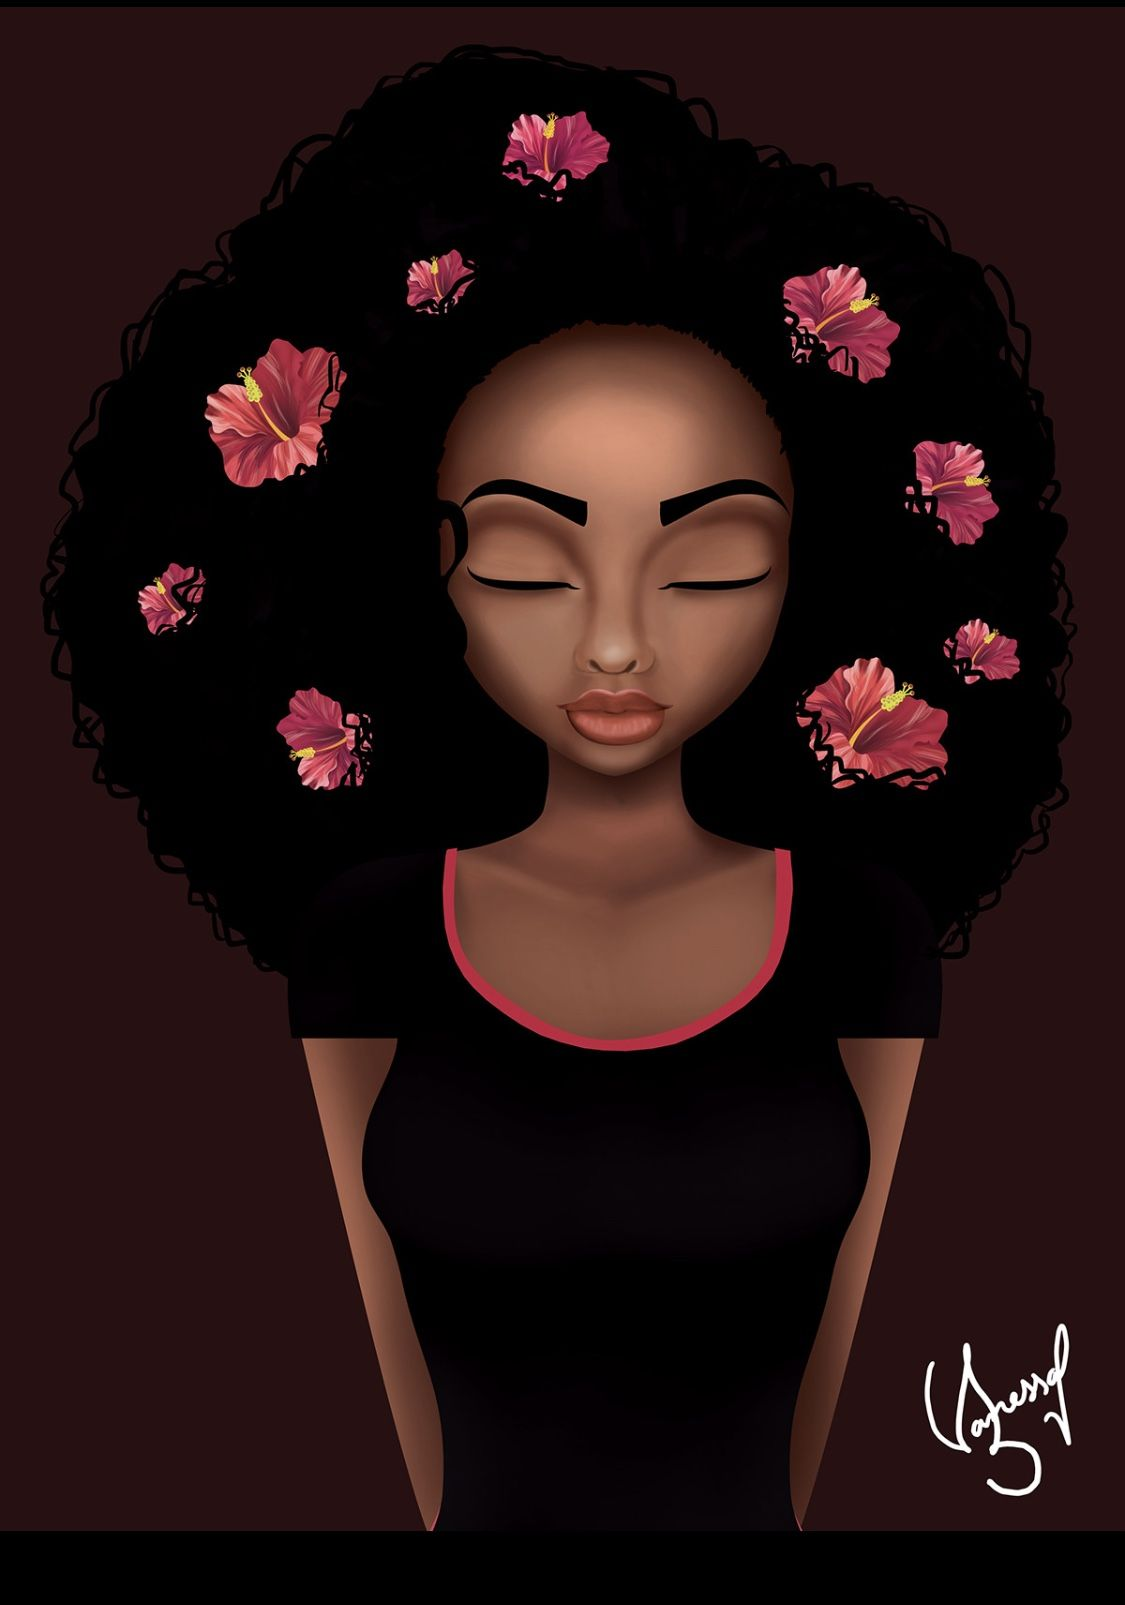 Queen Sit Pretty Theartoftina Blackart Art Digitalart Blackgirlmagic Melanin Melaninpoppin Melaninonfleek Black Women Art Female Art Black Art